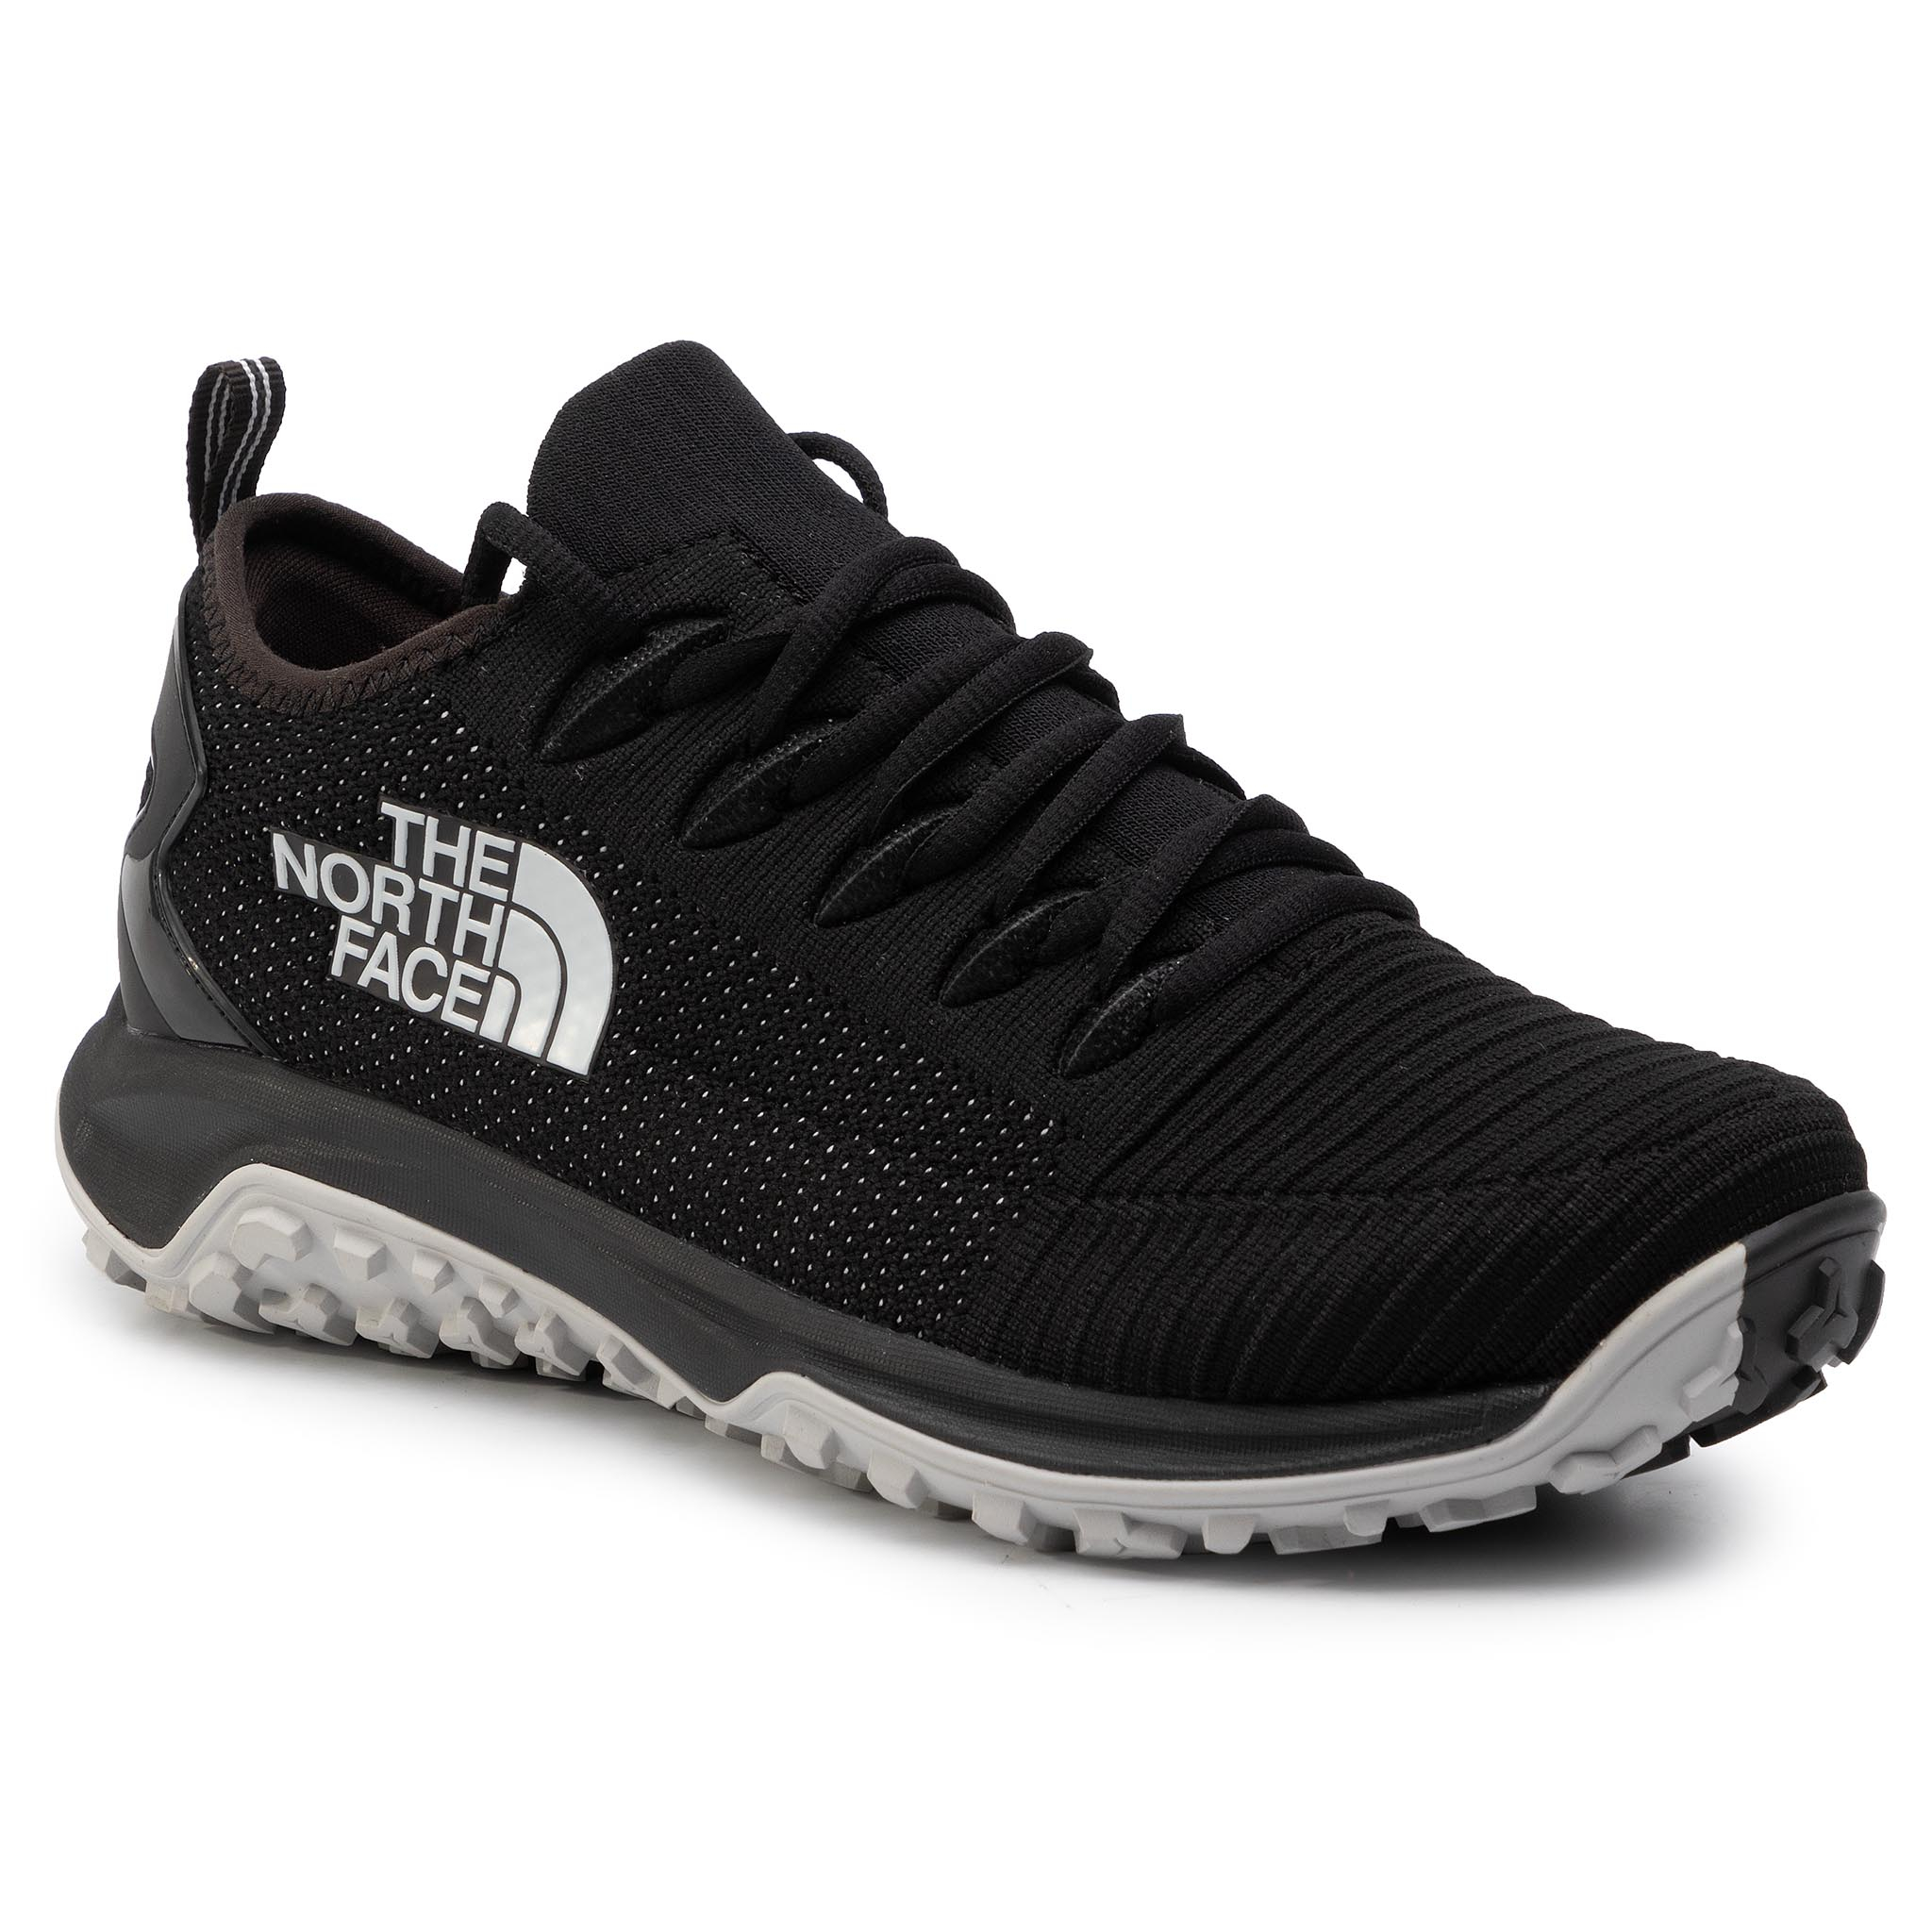 Trekkings THE NORTH FACE - Truxel T93WZECA5 Tnf Black/Micro Chip Grey 1